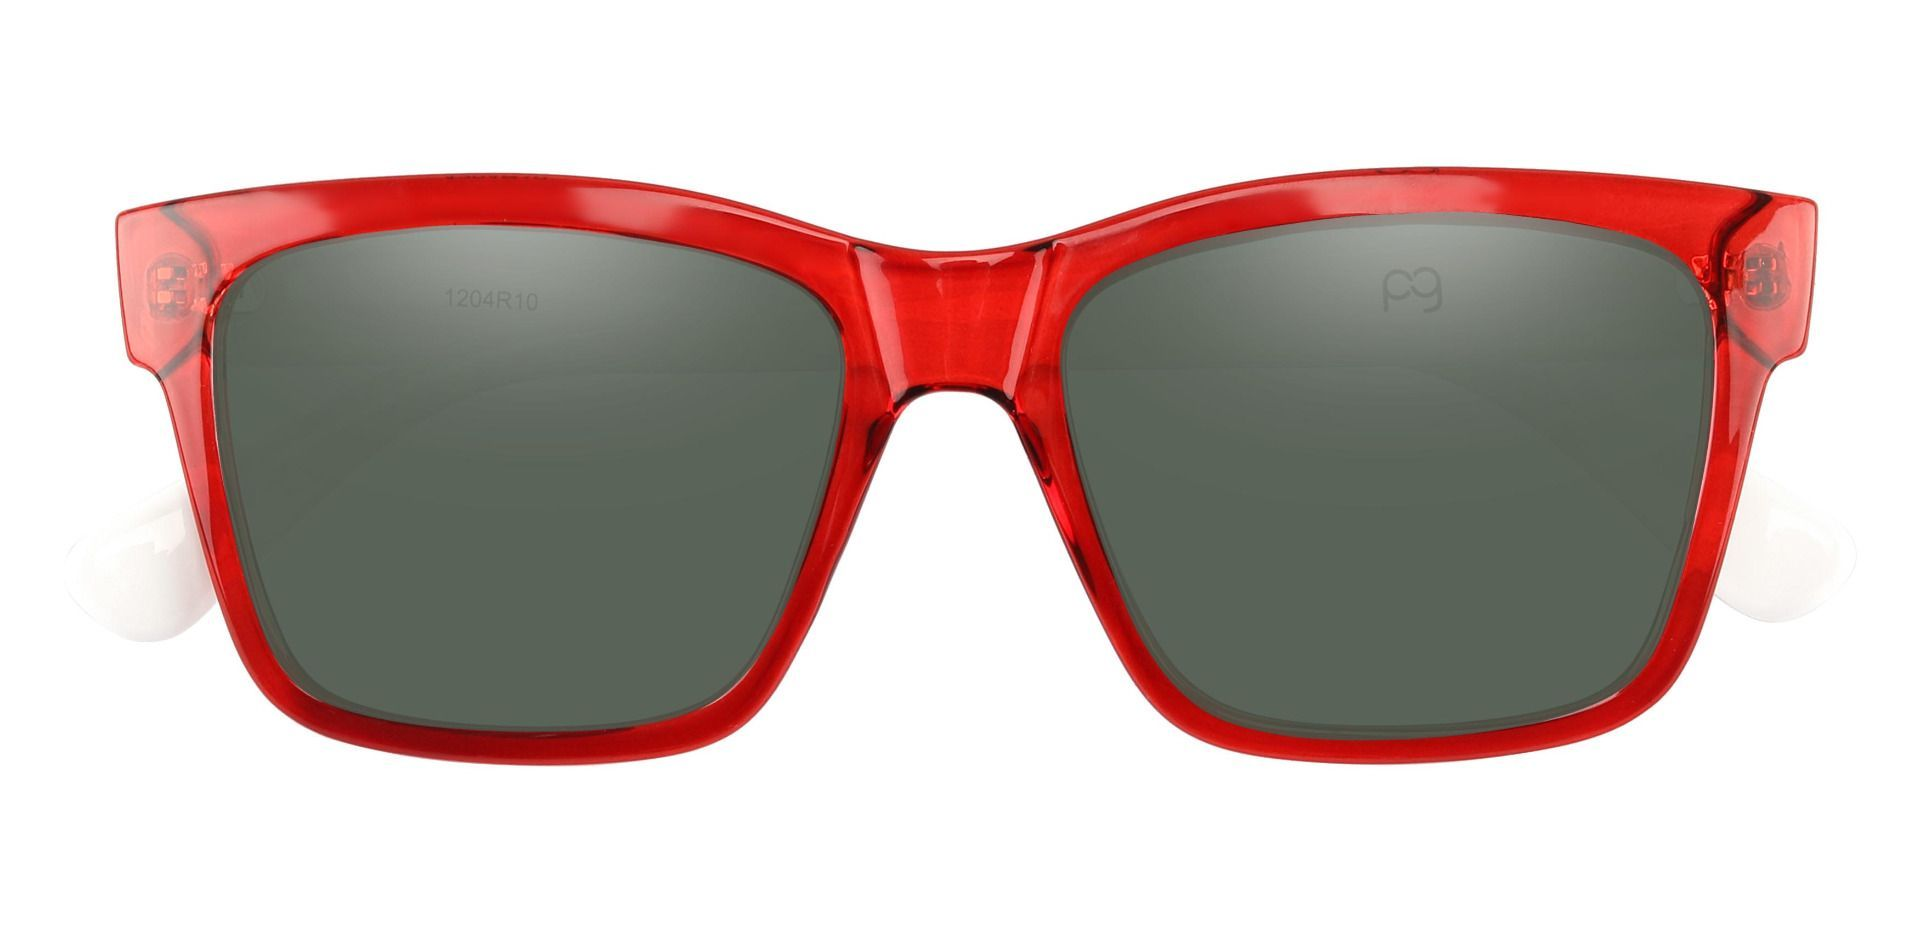 Brinley Square Lined Bifocal Sunglasses - Red Frame With Green Lenses